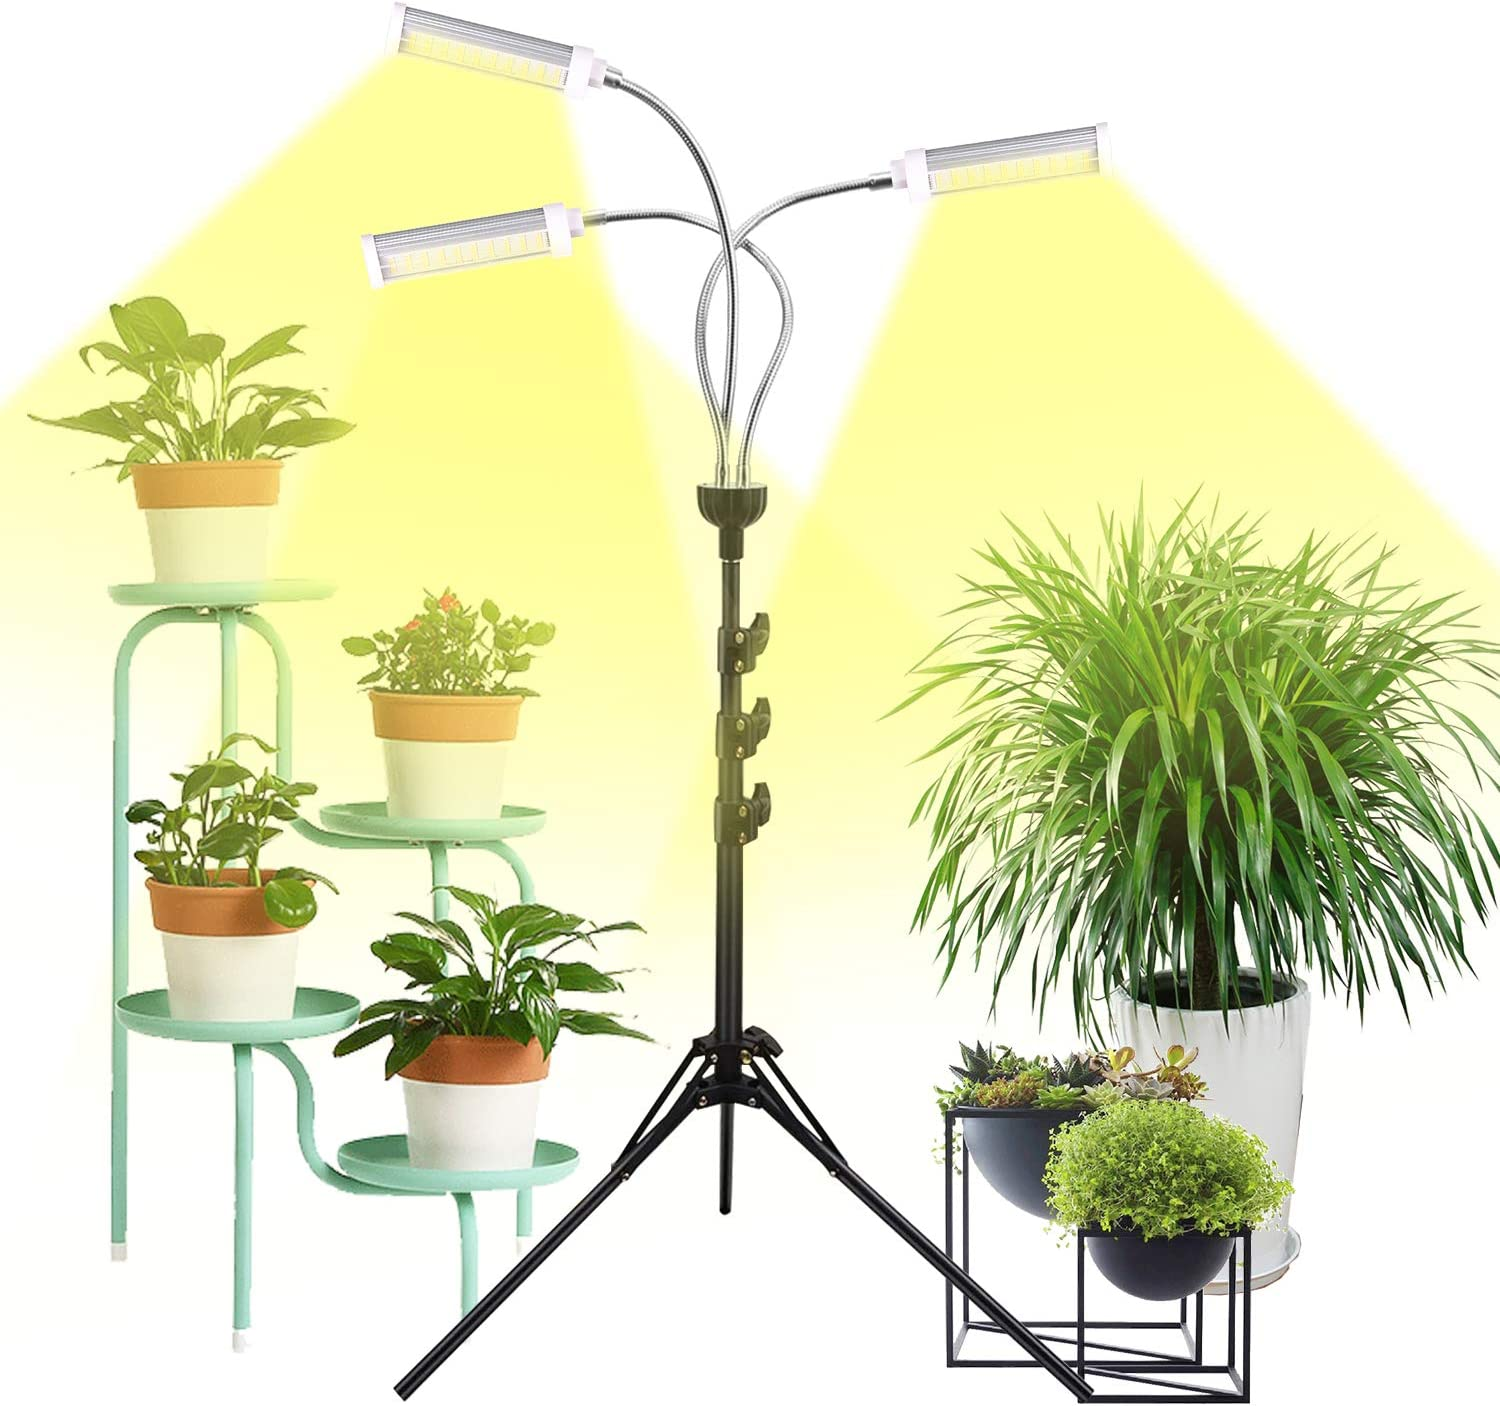 Plant Grow Lights for Indoor Plants Full Spectrum with Timer for Your Indoor Garden, 150W Auto On/Off Timing Function Led Grow Light, Tripod Stand Adjustable for Succulent Seedling Vegetables